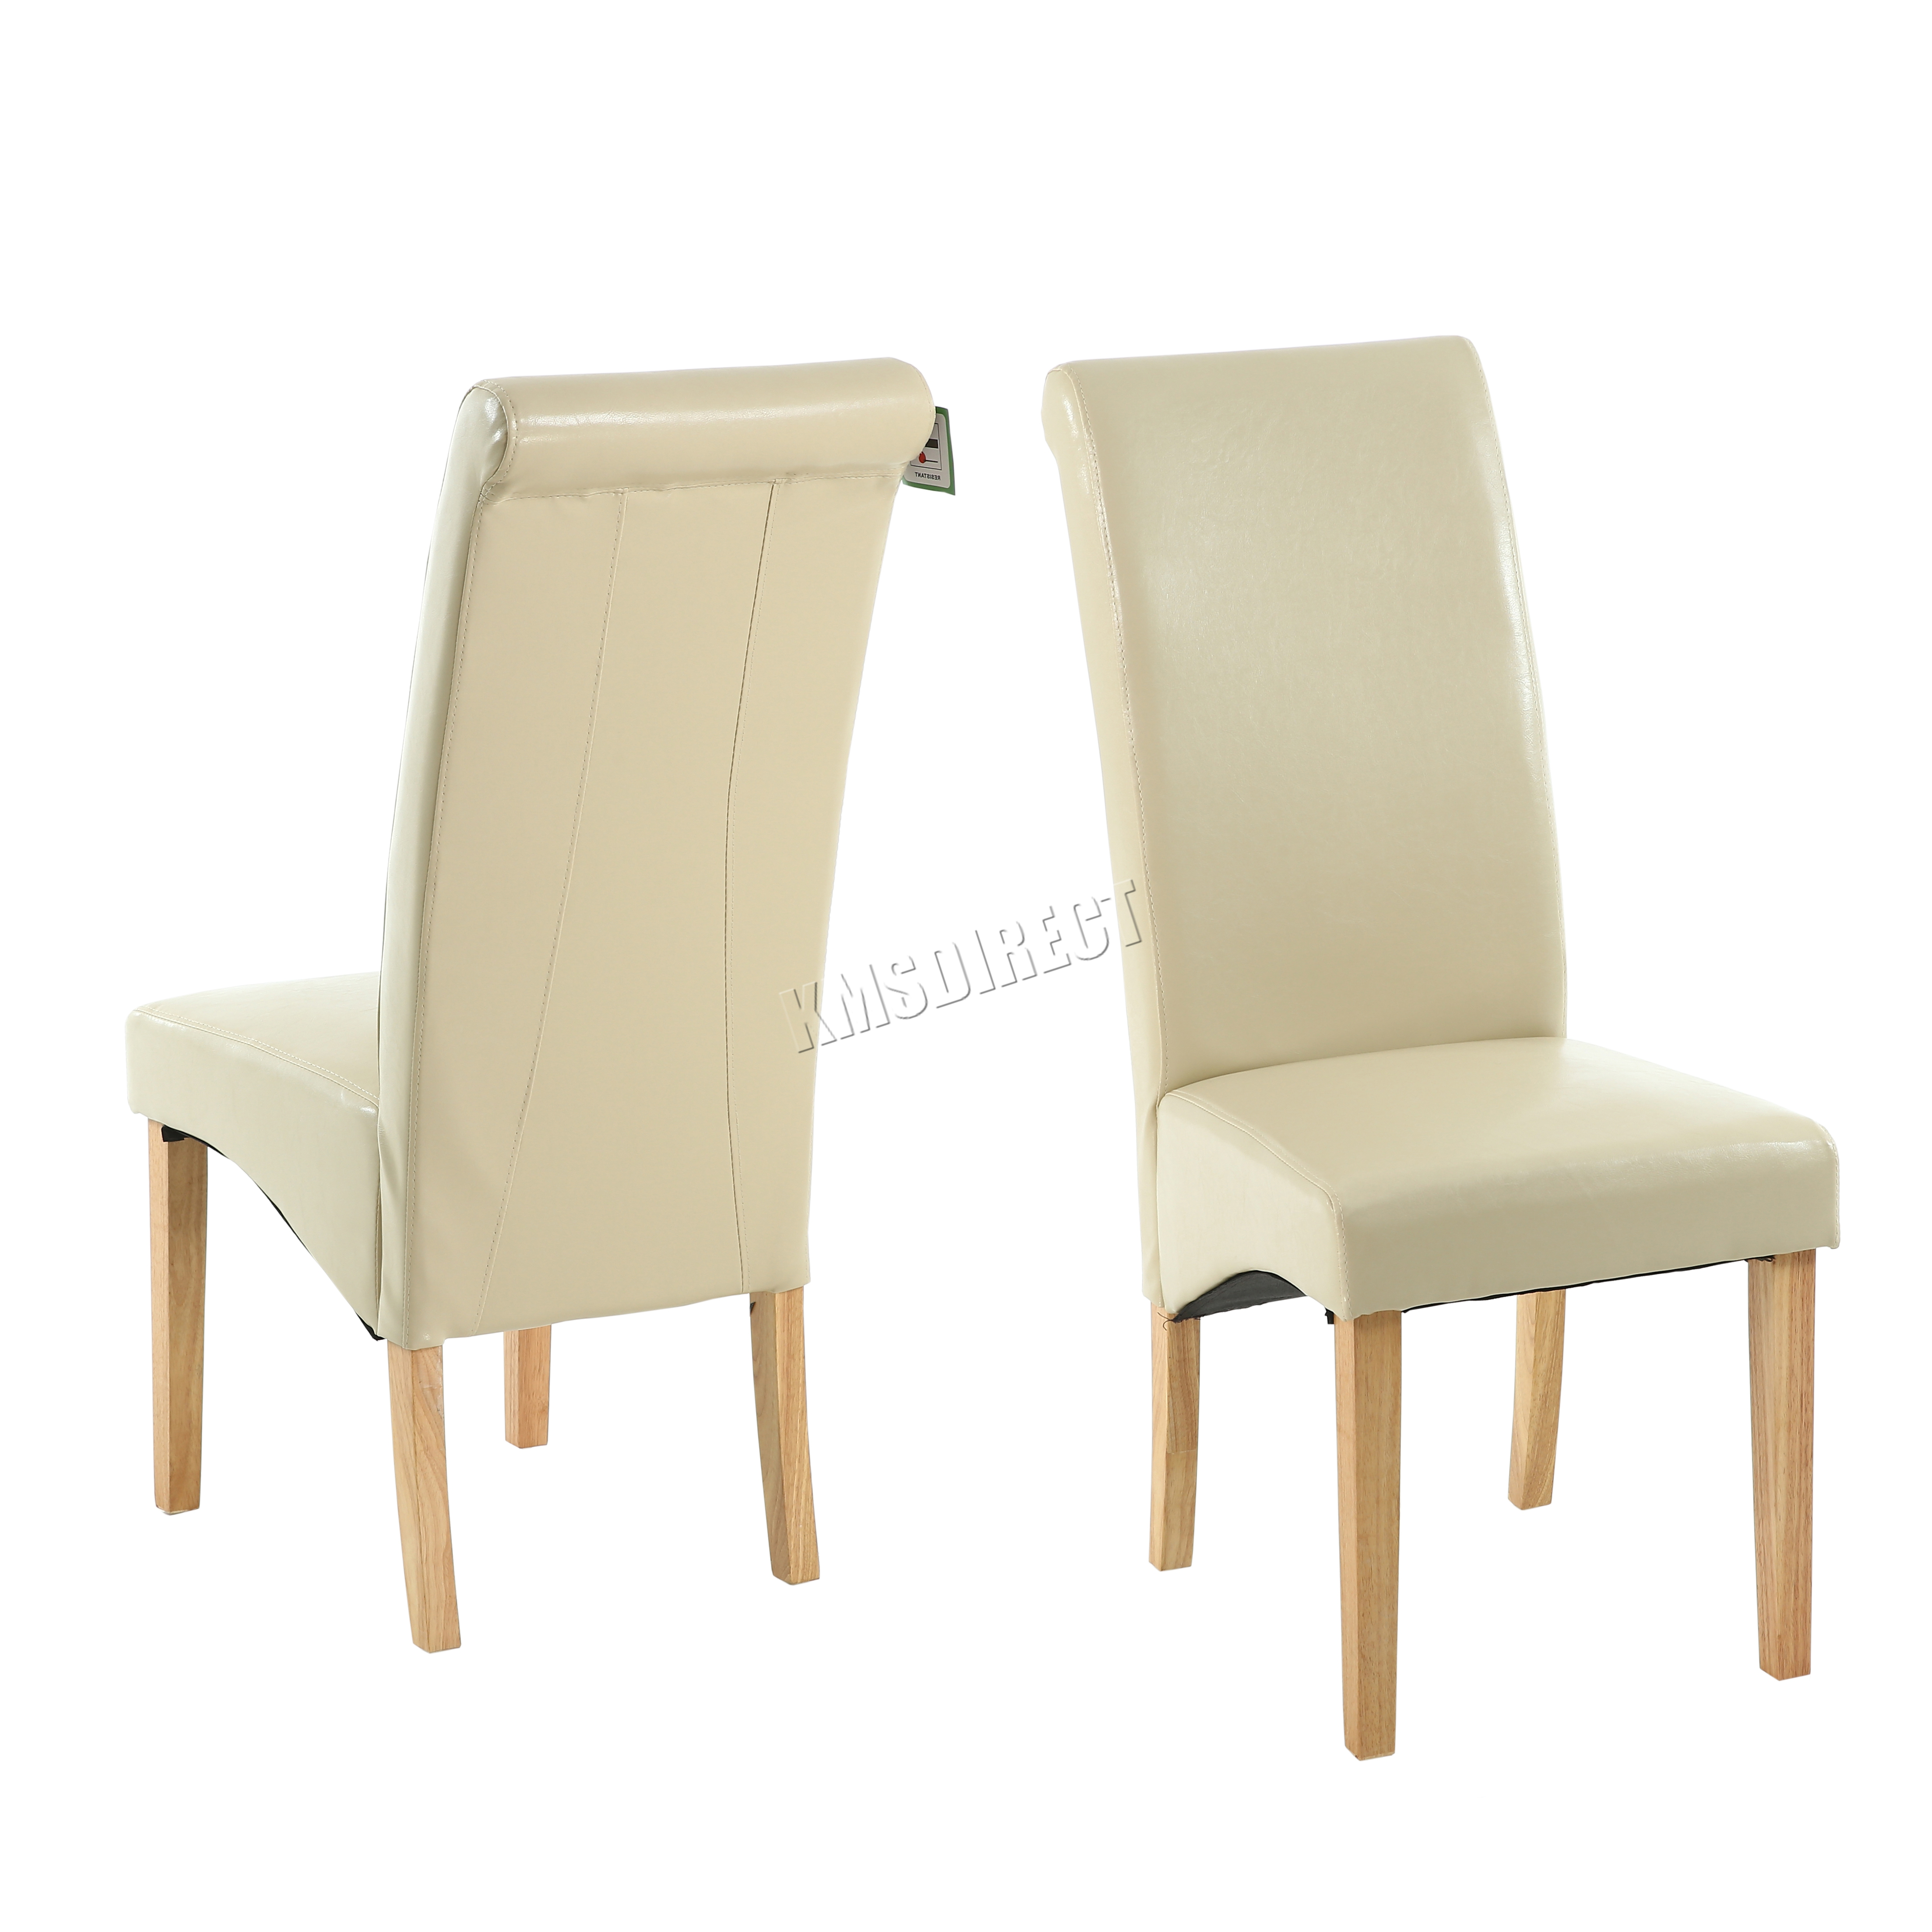 High Backed Kitchen Chairs: New Cream Faux Leather Dining Chairs Roll Top Scroll High